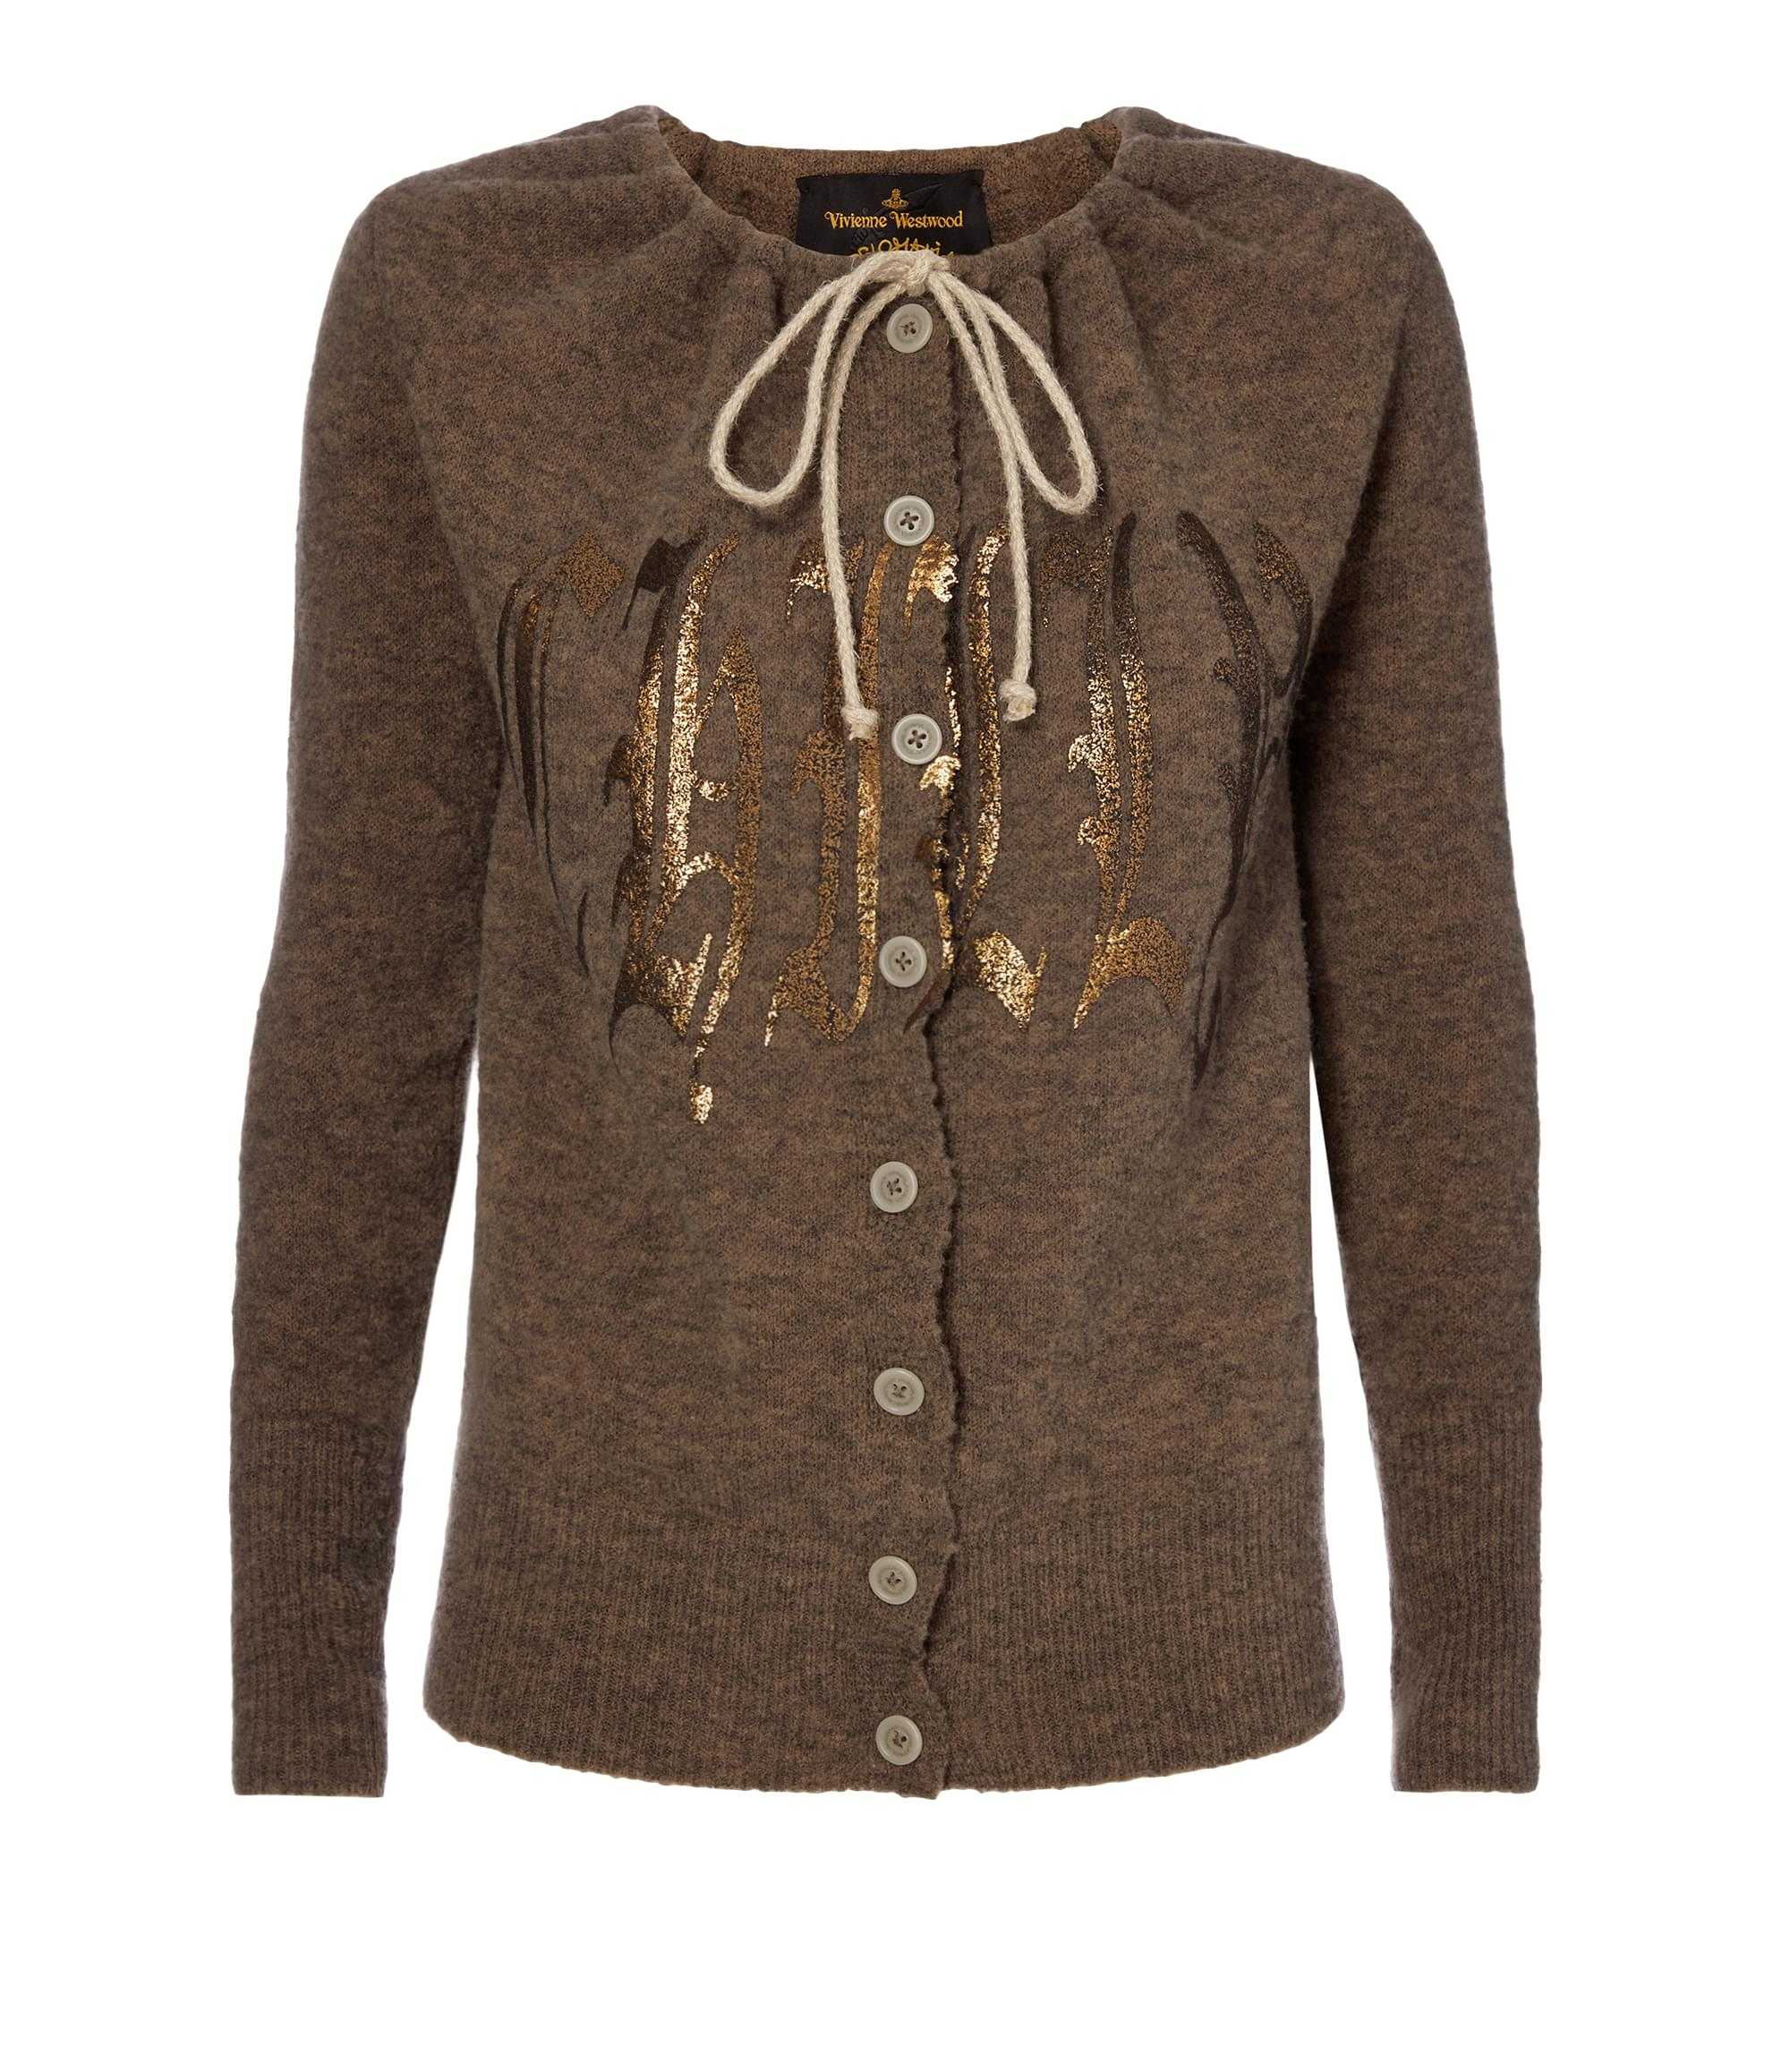 Vivienne Westwood Chilly Oasis Cardigan